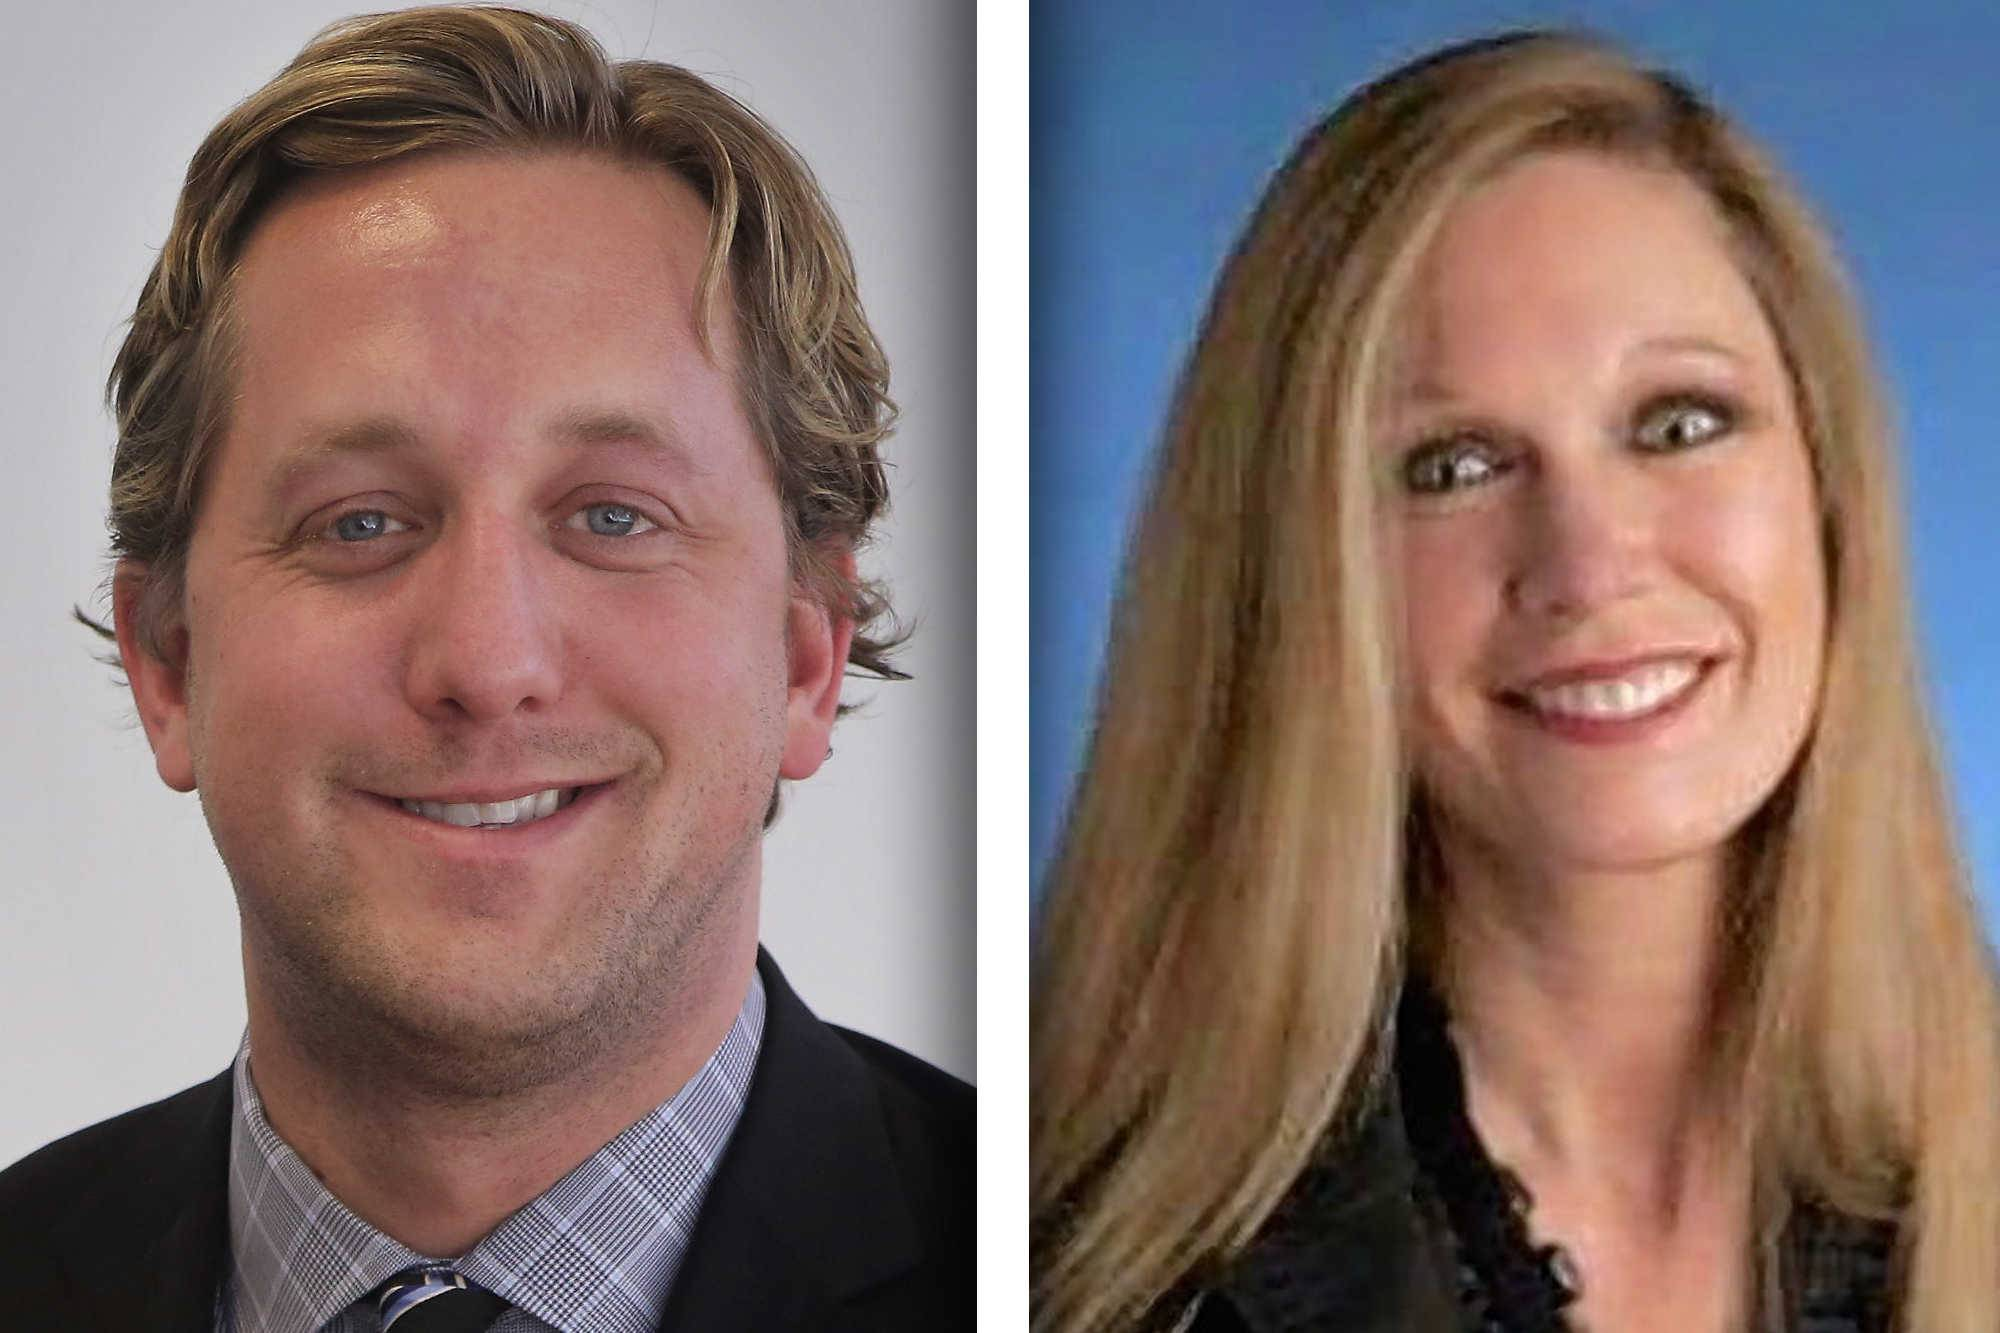 Republican Aaron Lawlor, left, and Democrat Gerri Songer are candidates for District 18 of the Lake County Board